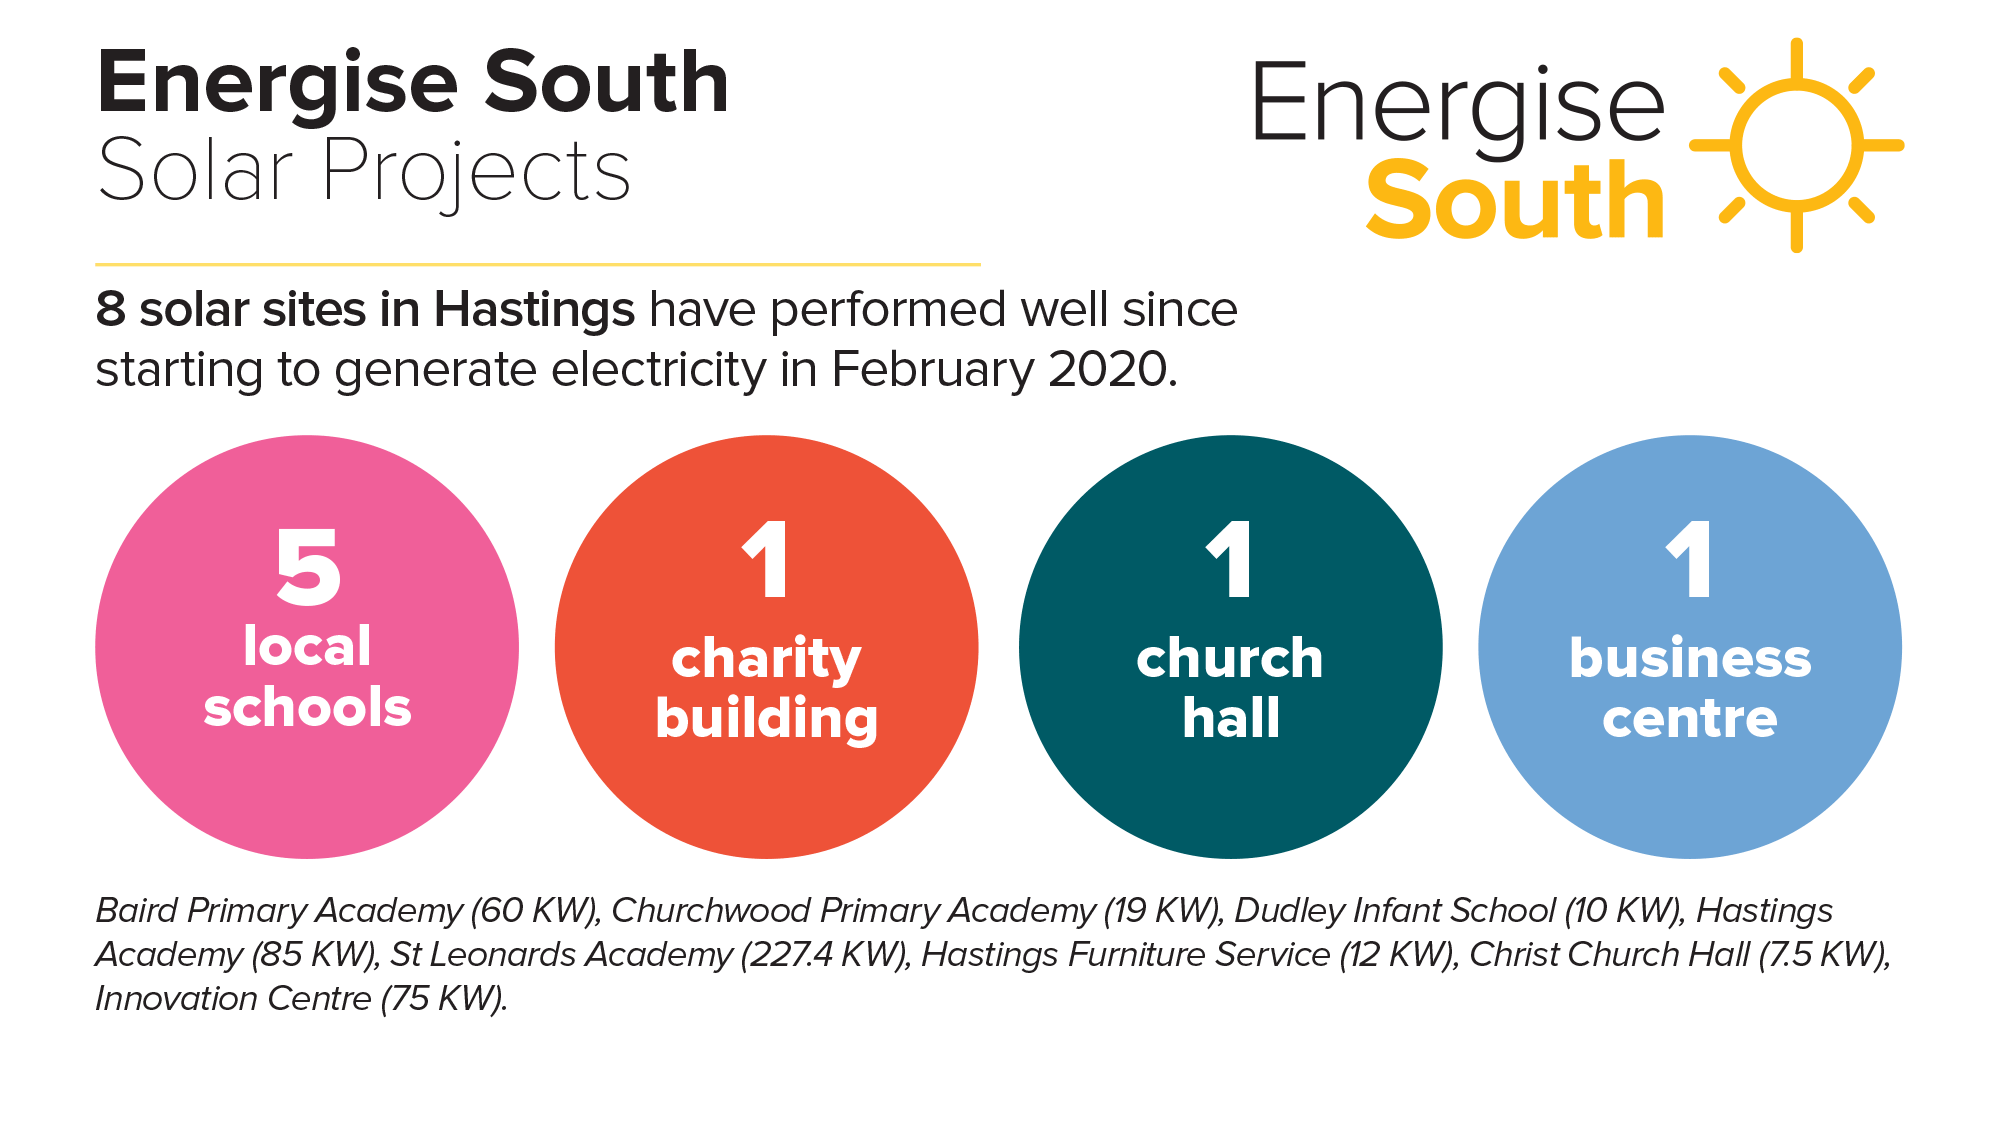 Energise_South_project_sites